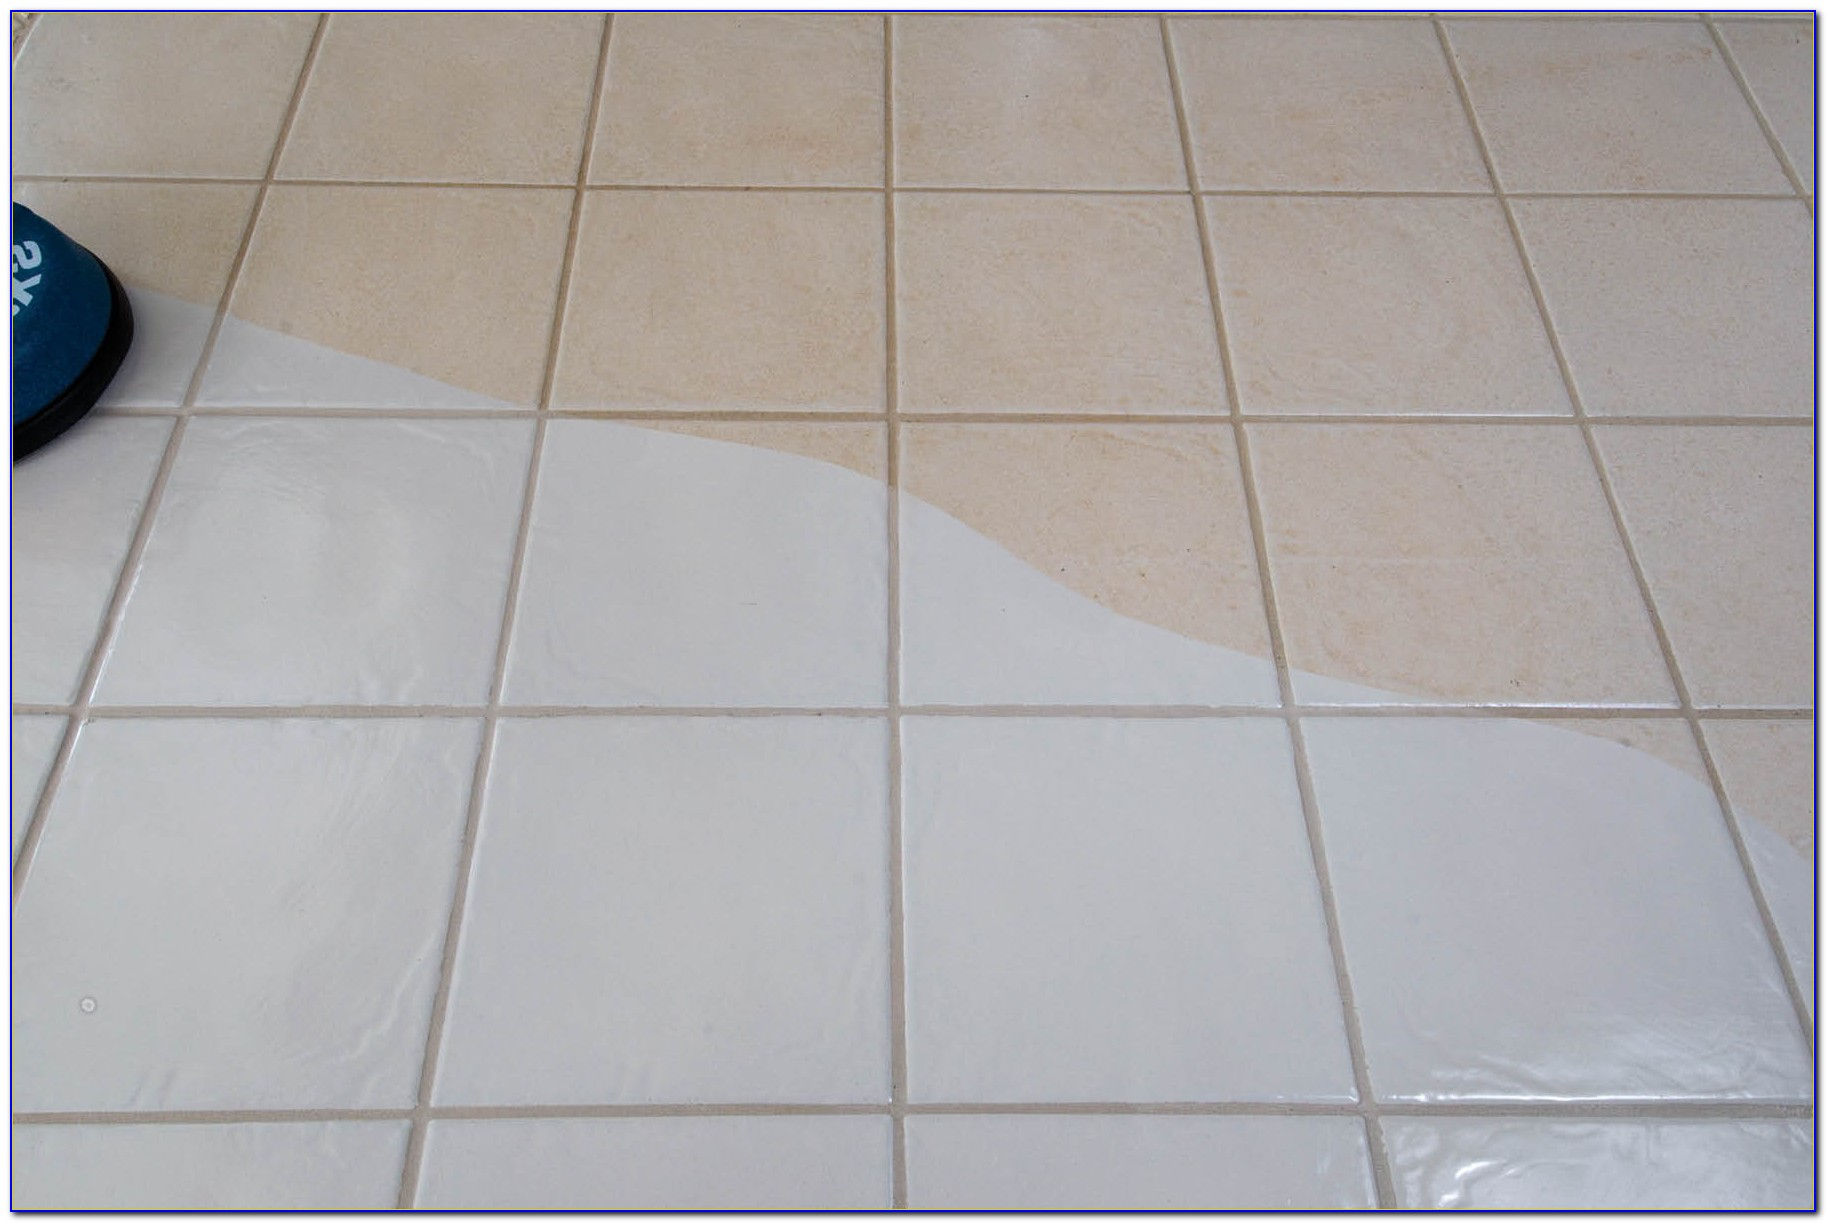 How To Clean Grout In Floor Tiles Naturally